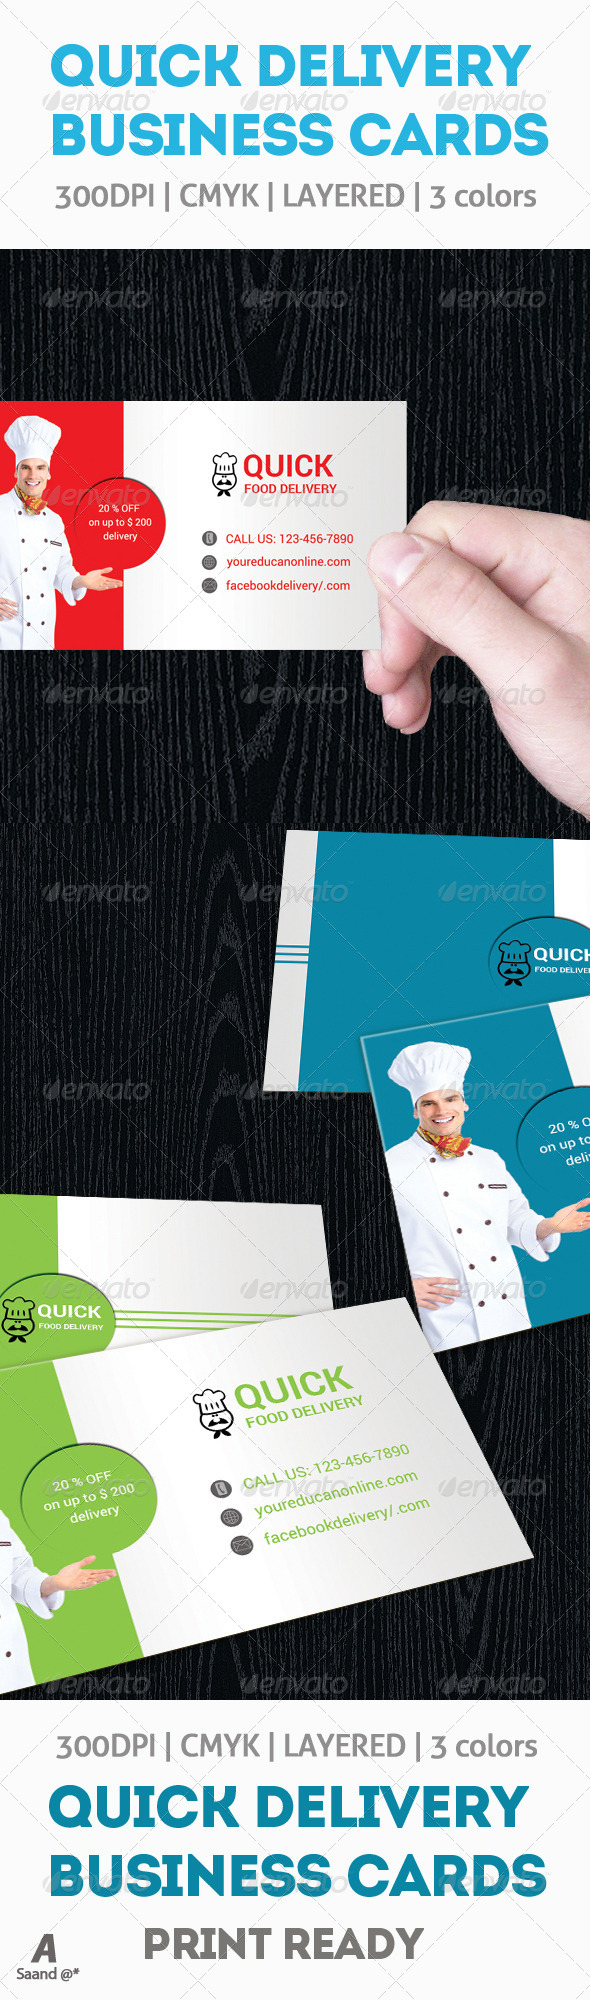 Food Delivery Business Cards #GraphicRiver | ad ideas | Pinterest ...